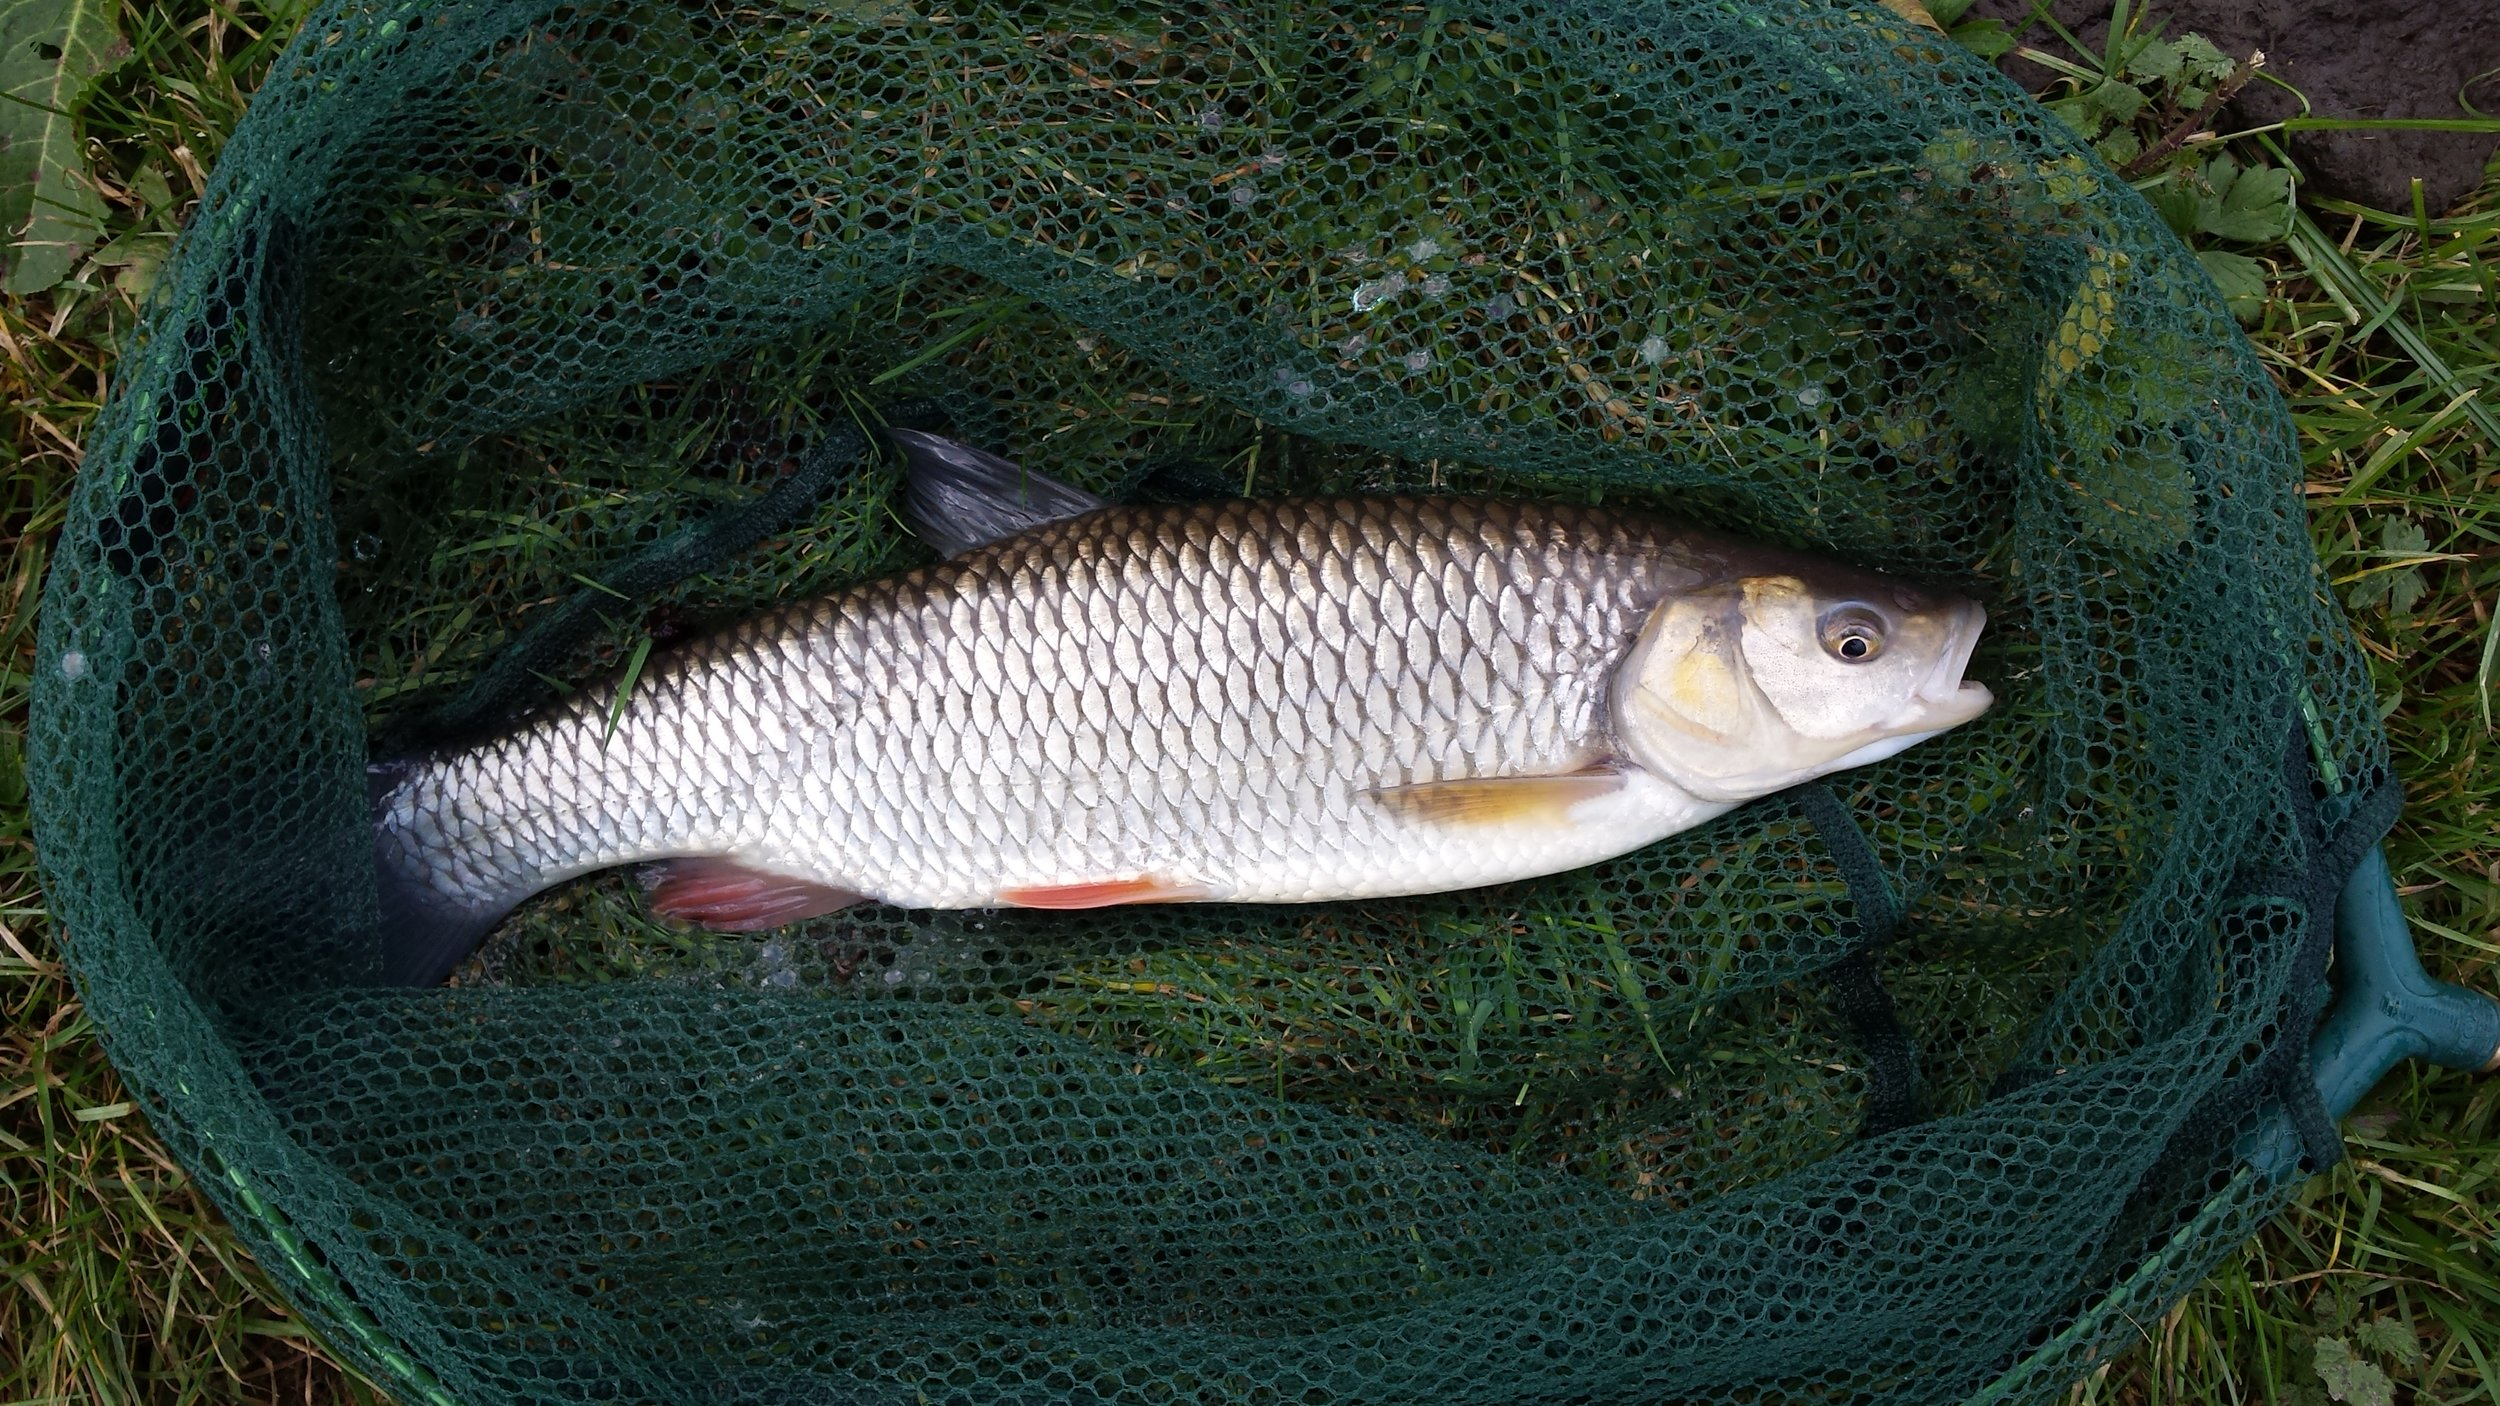 Another fin perfect Chub of around 1lbs caught by Mike Shrimpton